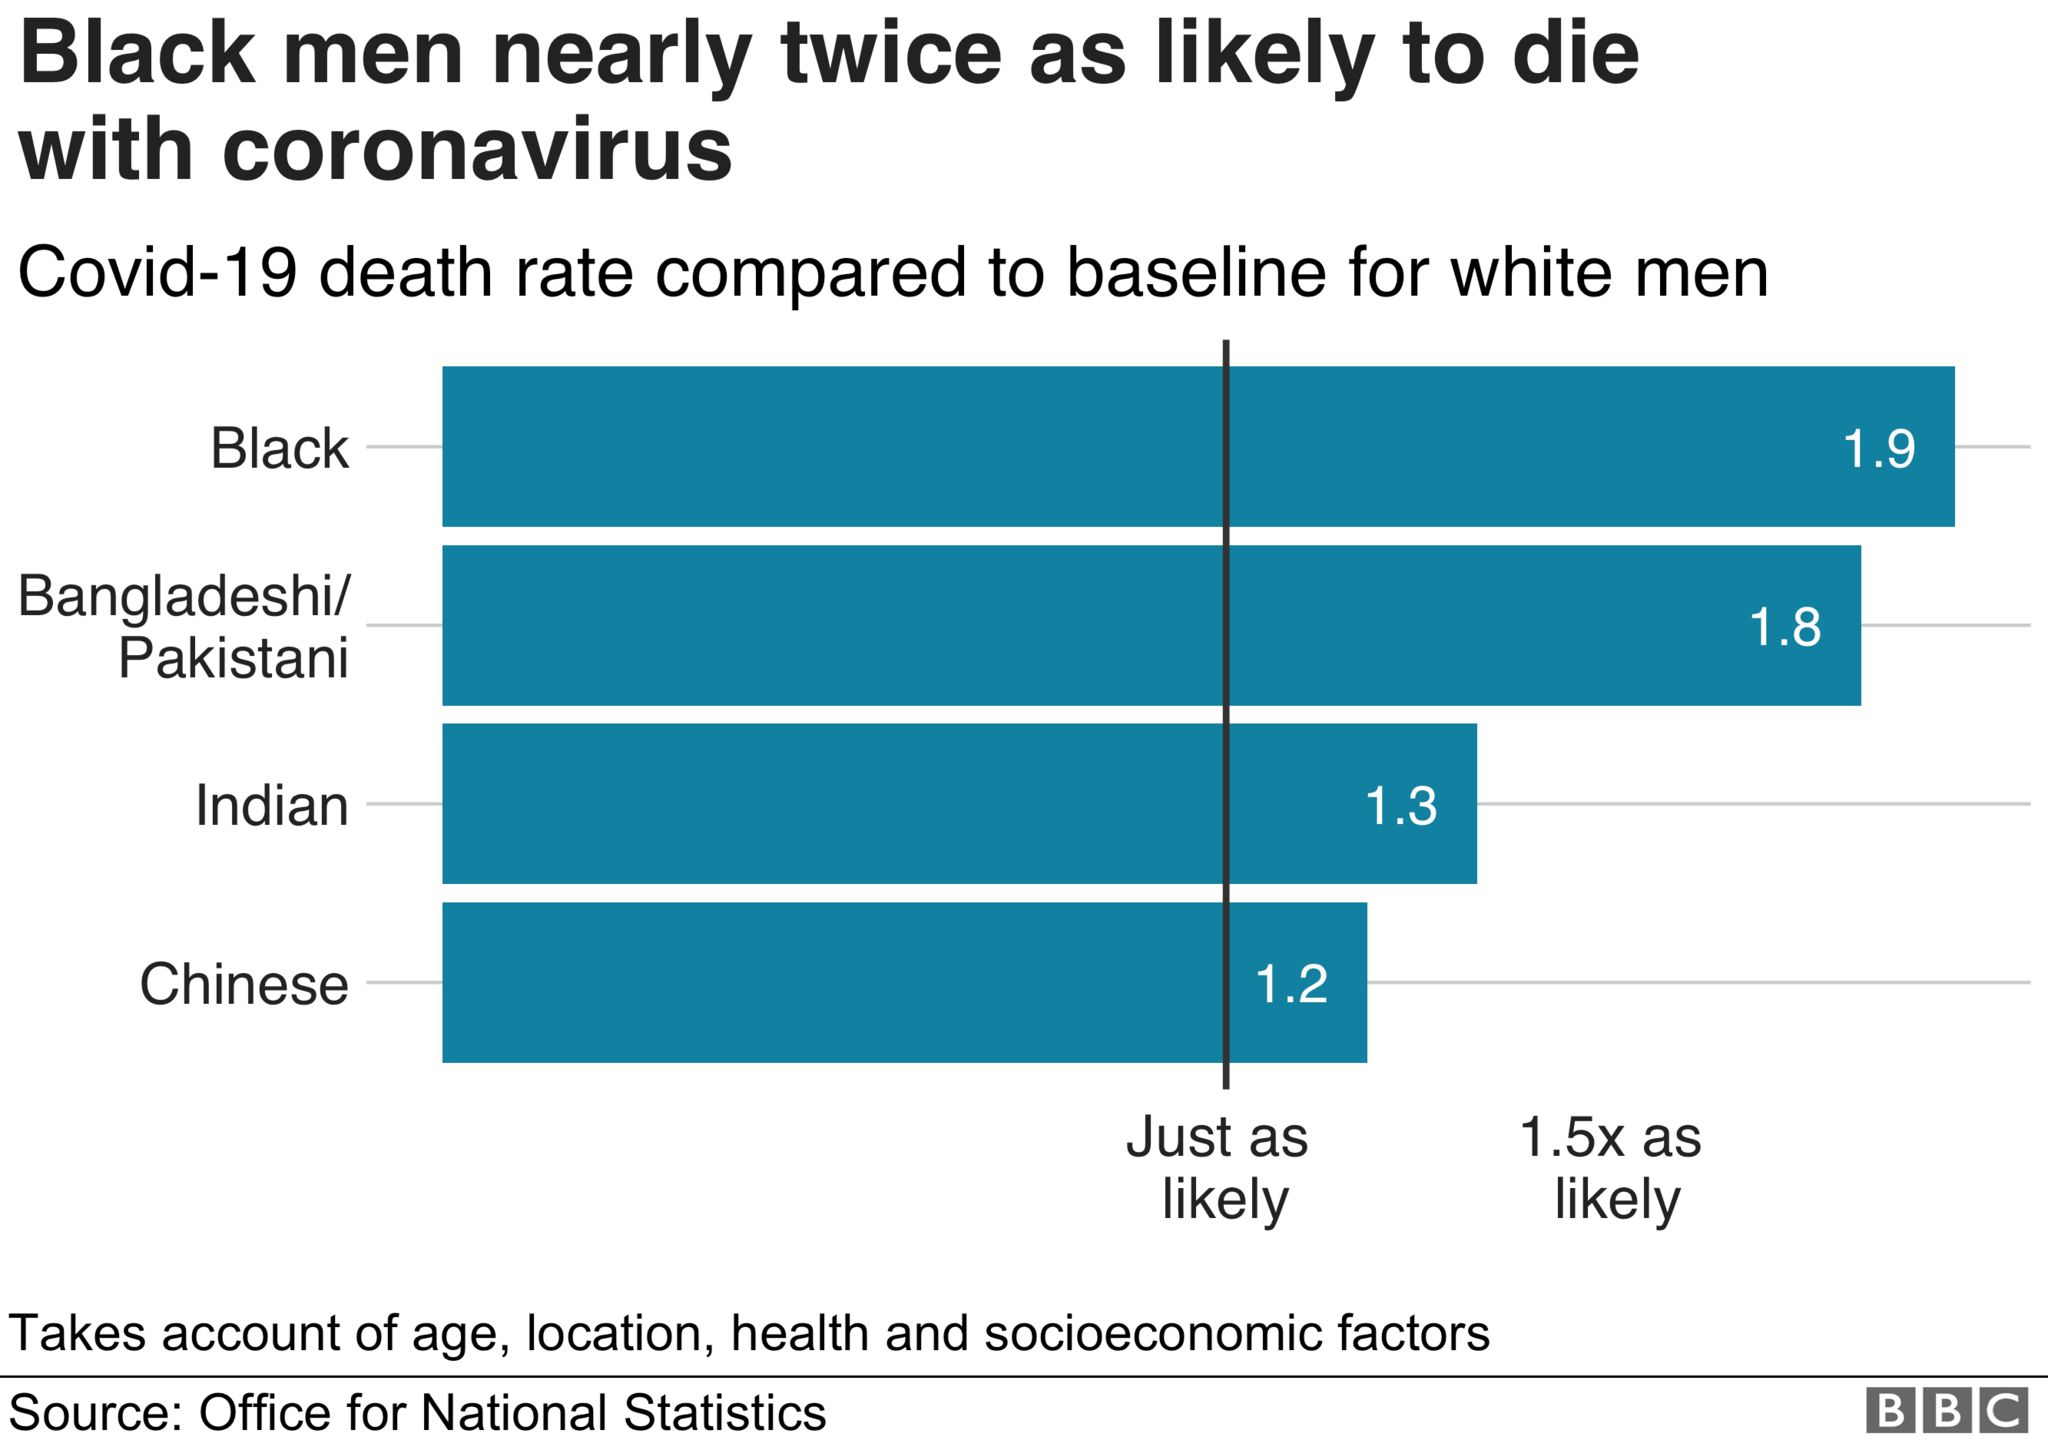 Chart showing comparison of Covid-19 death rate for ethnic minority men and white men